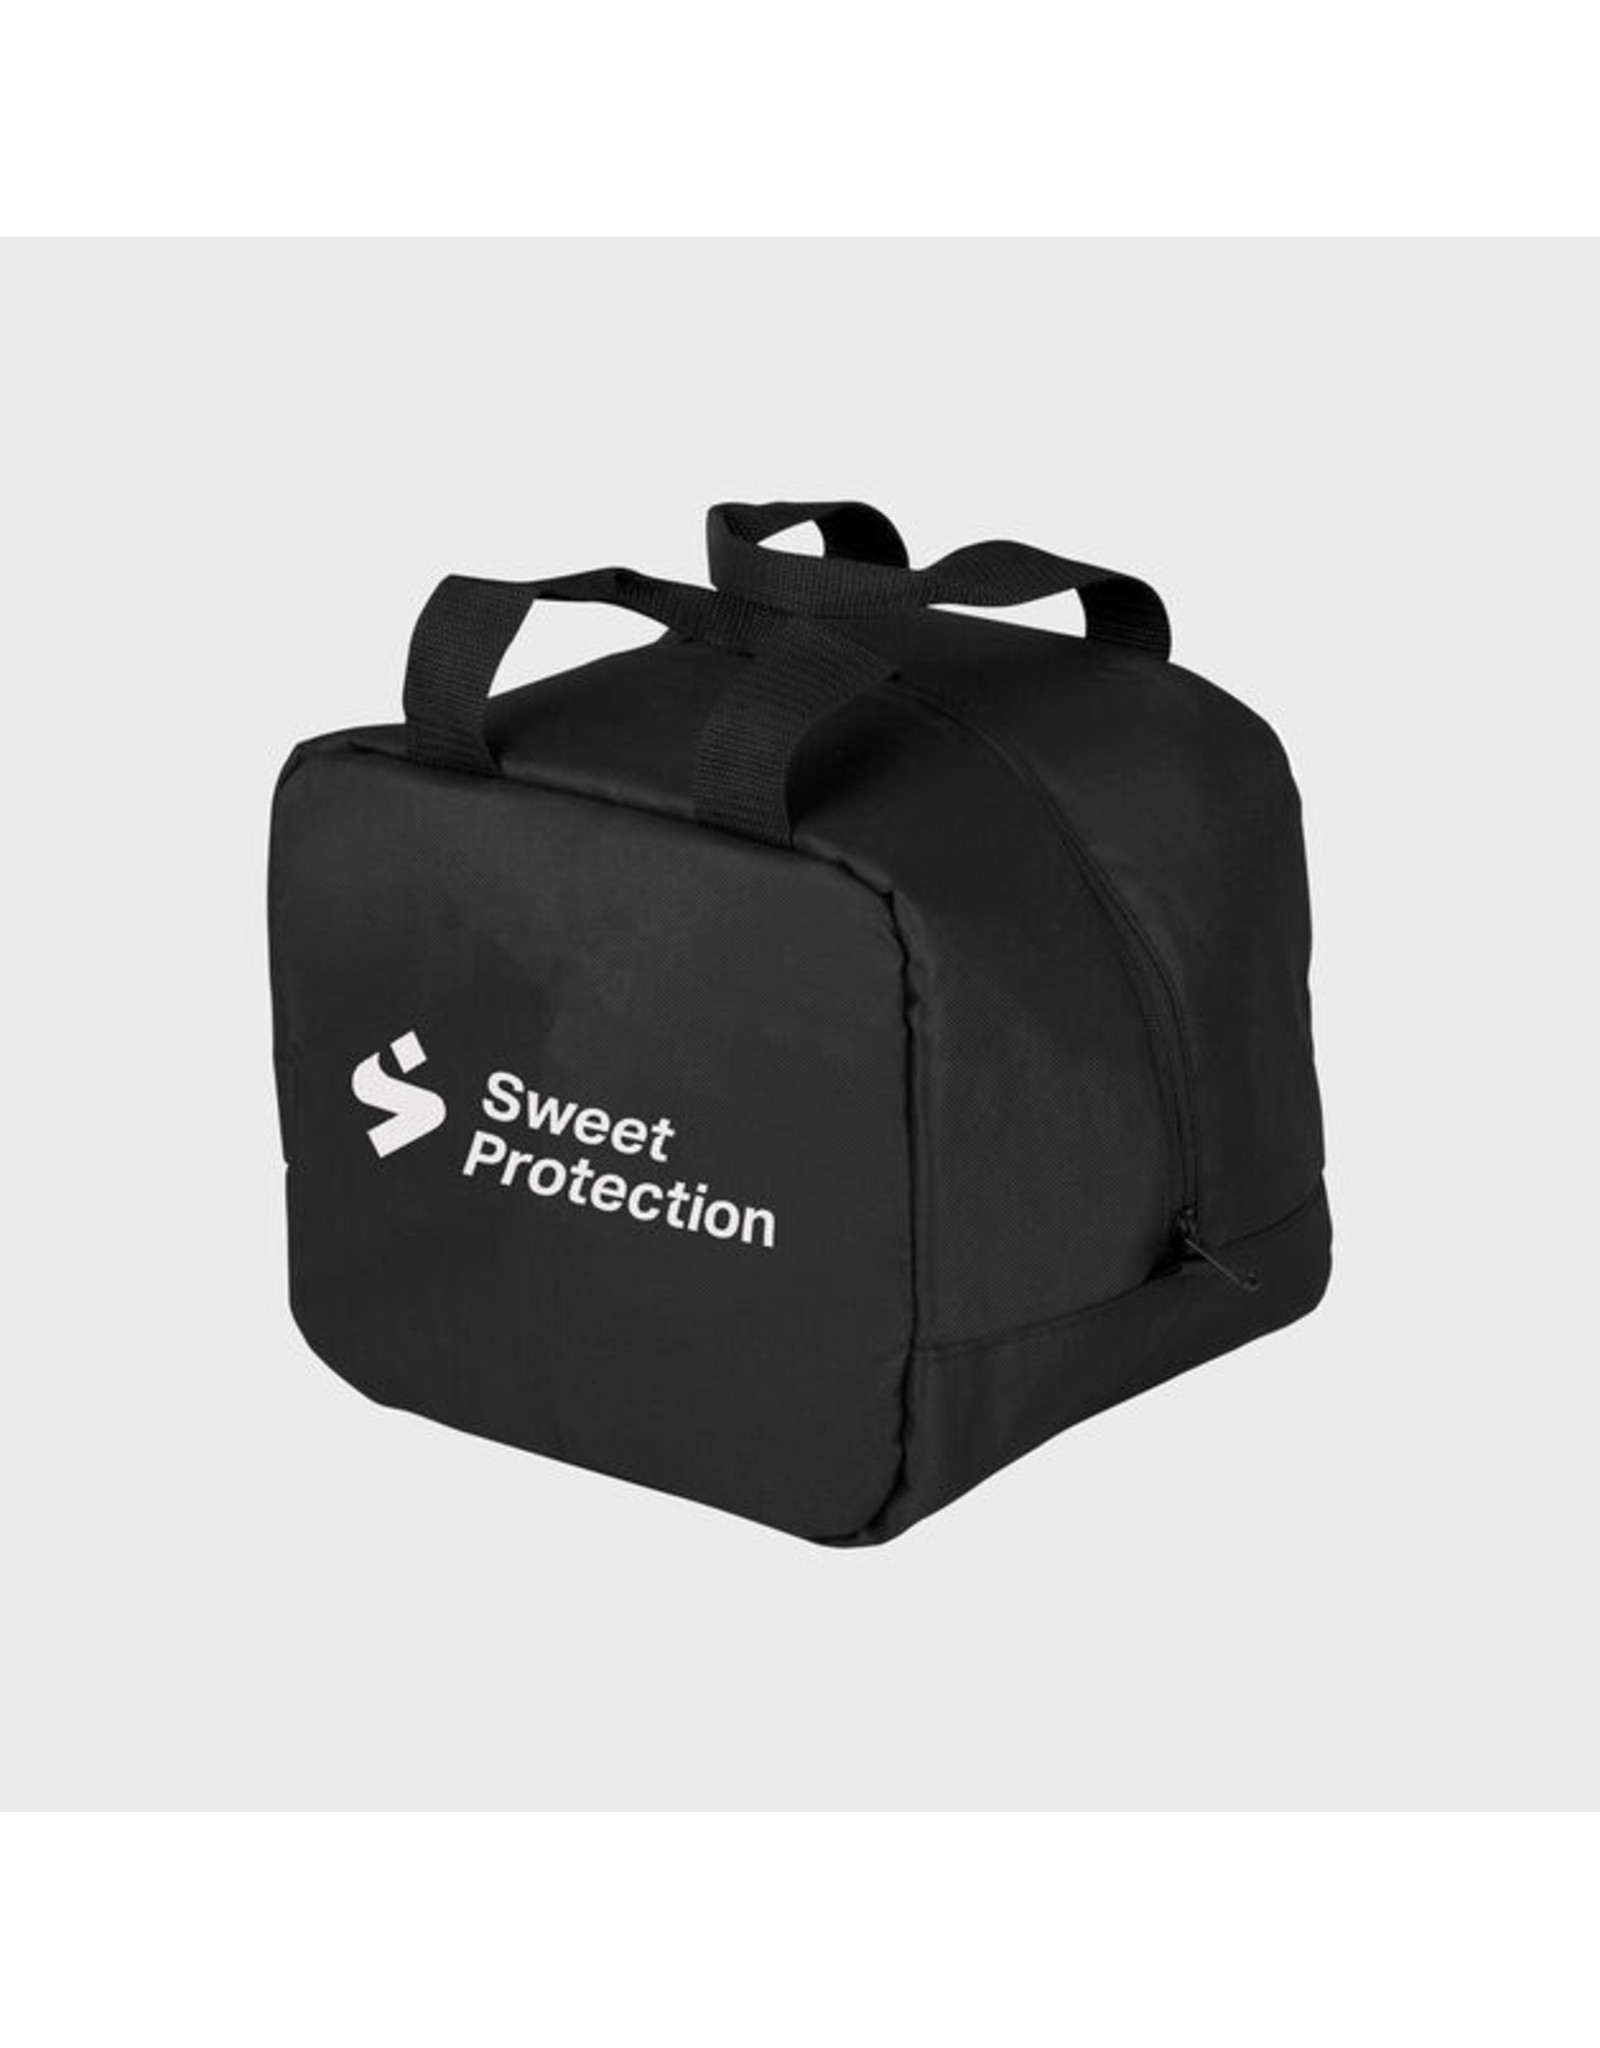 Sweet Protection Sweet Protection Sac pour Casque Universel